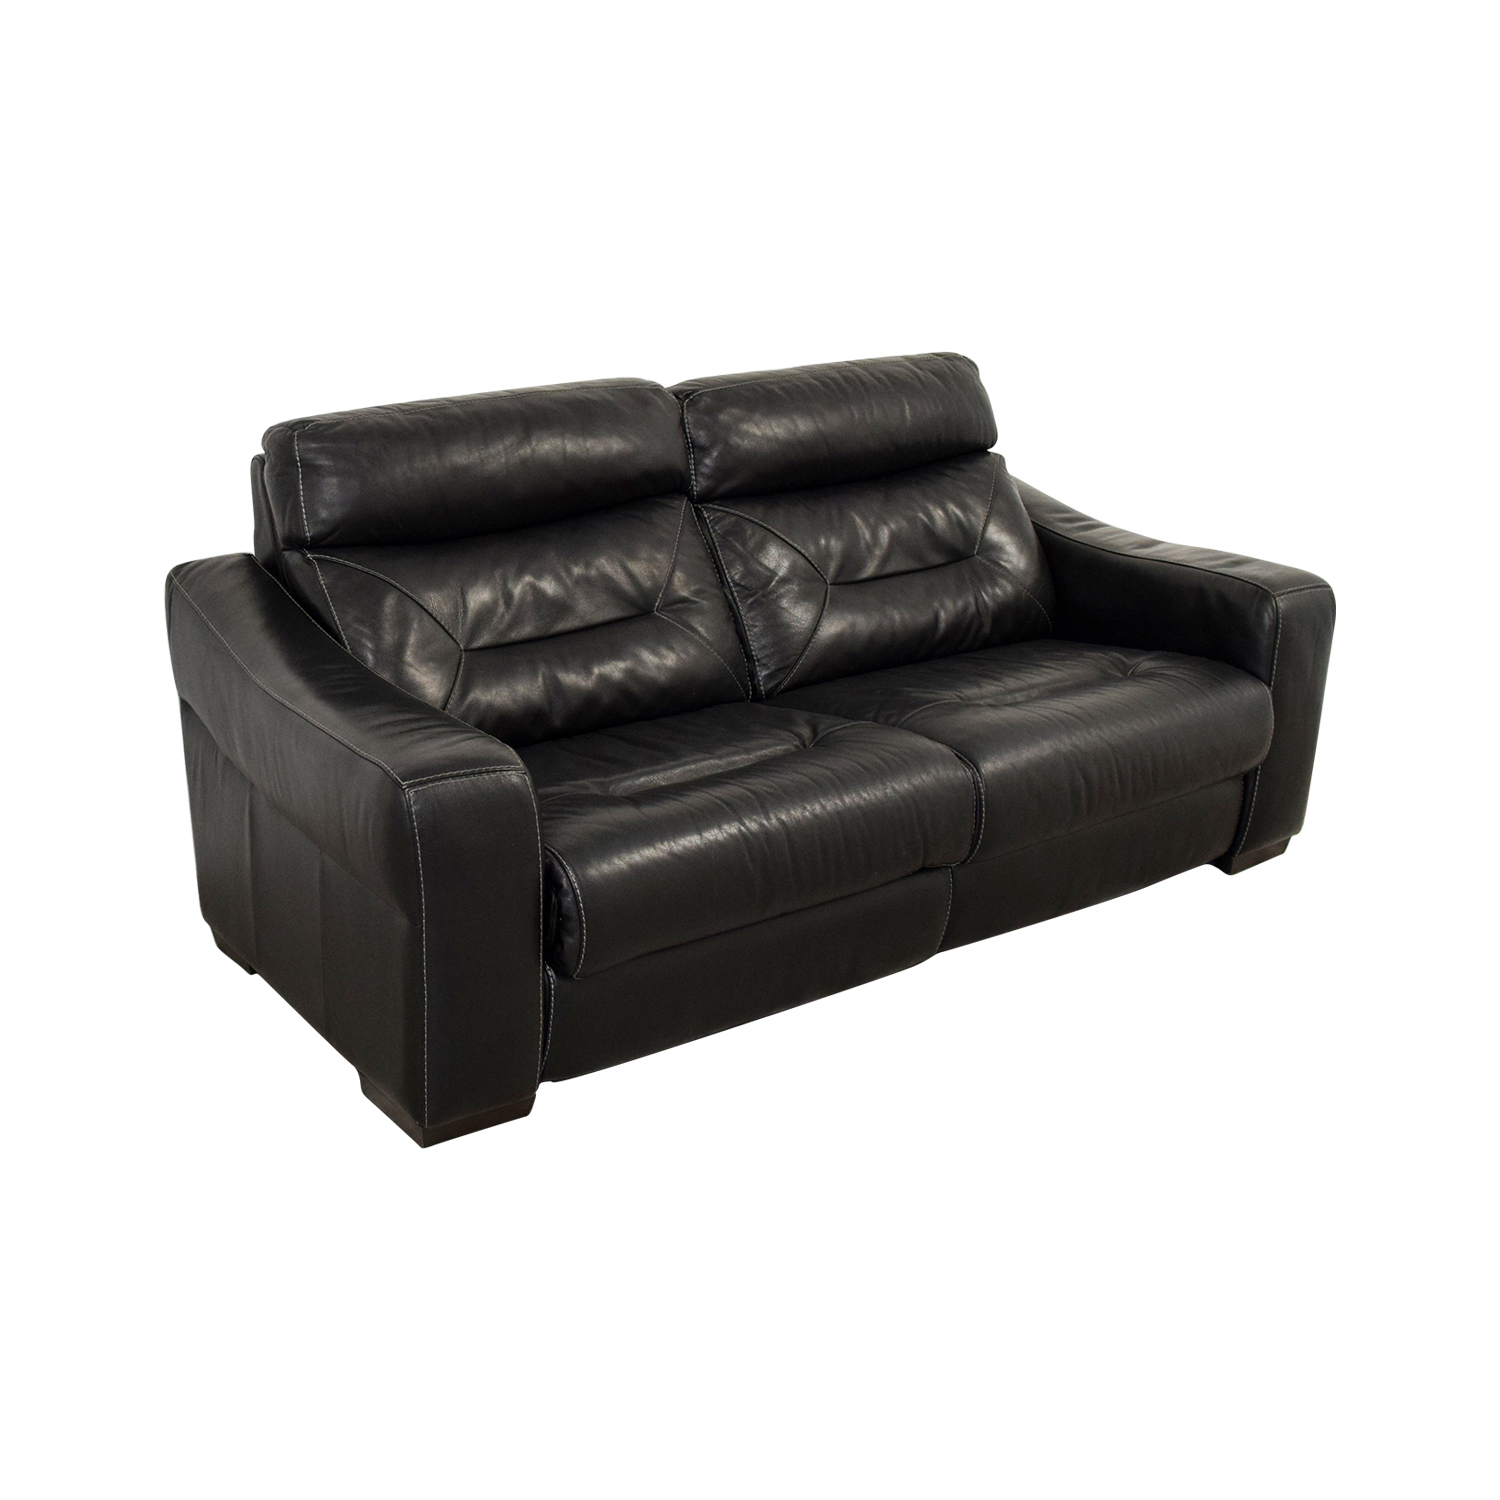 54 Off Macy 39 S Macy 39 S Black Leather Recliner Sofa Chairs